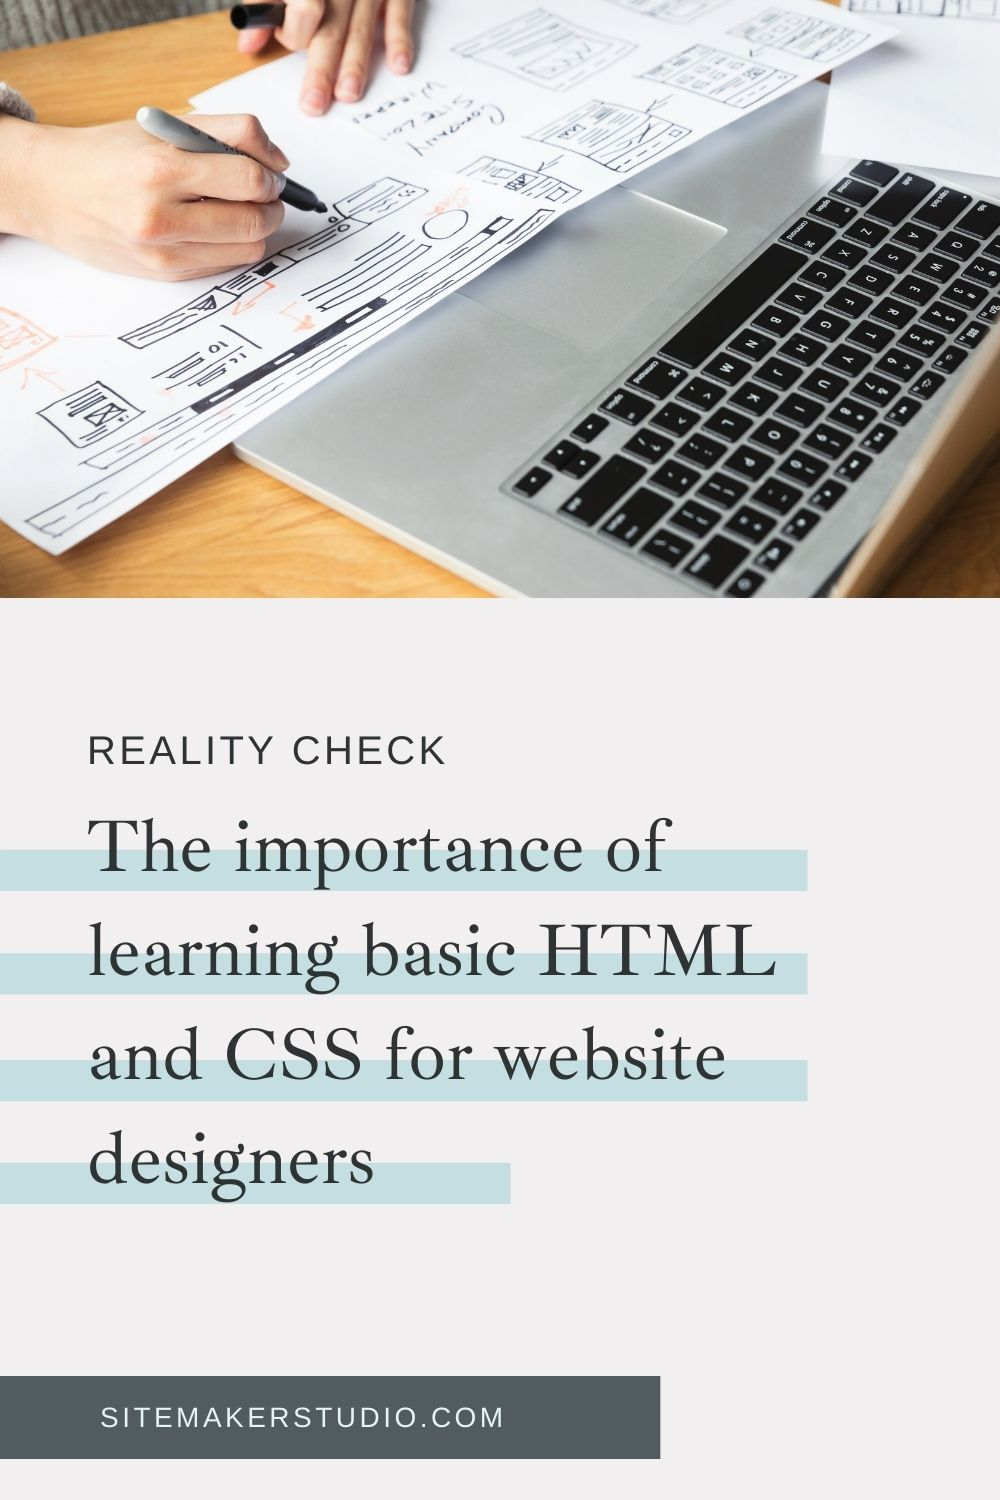 it's important for aspiring web designers to learn HTML and CSS